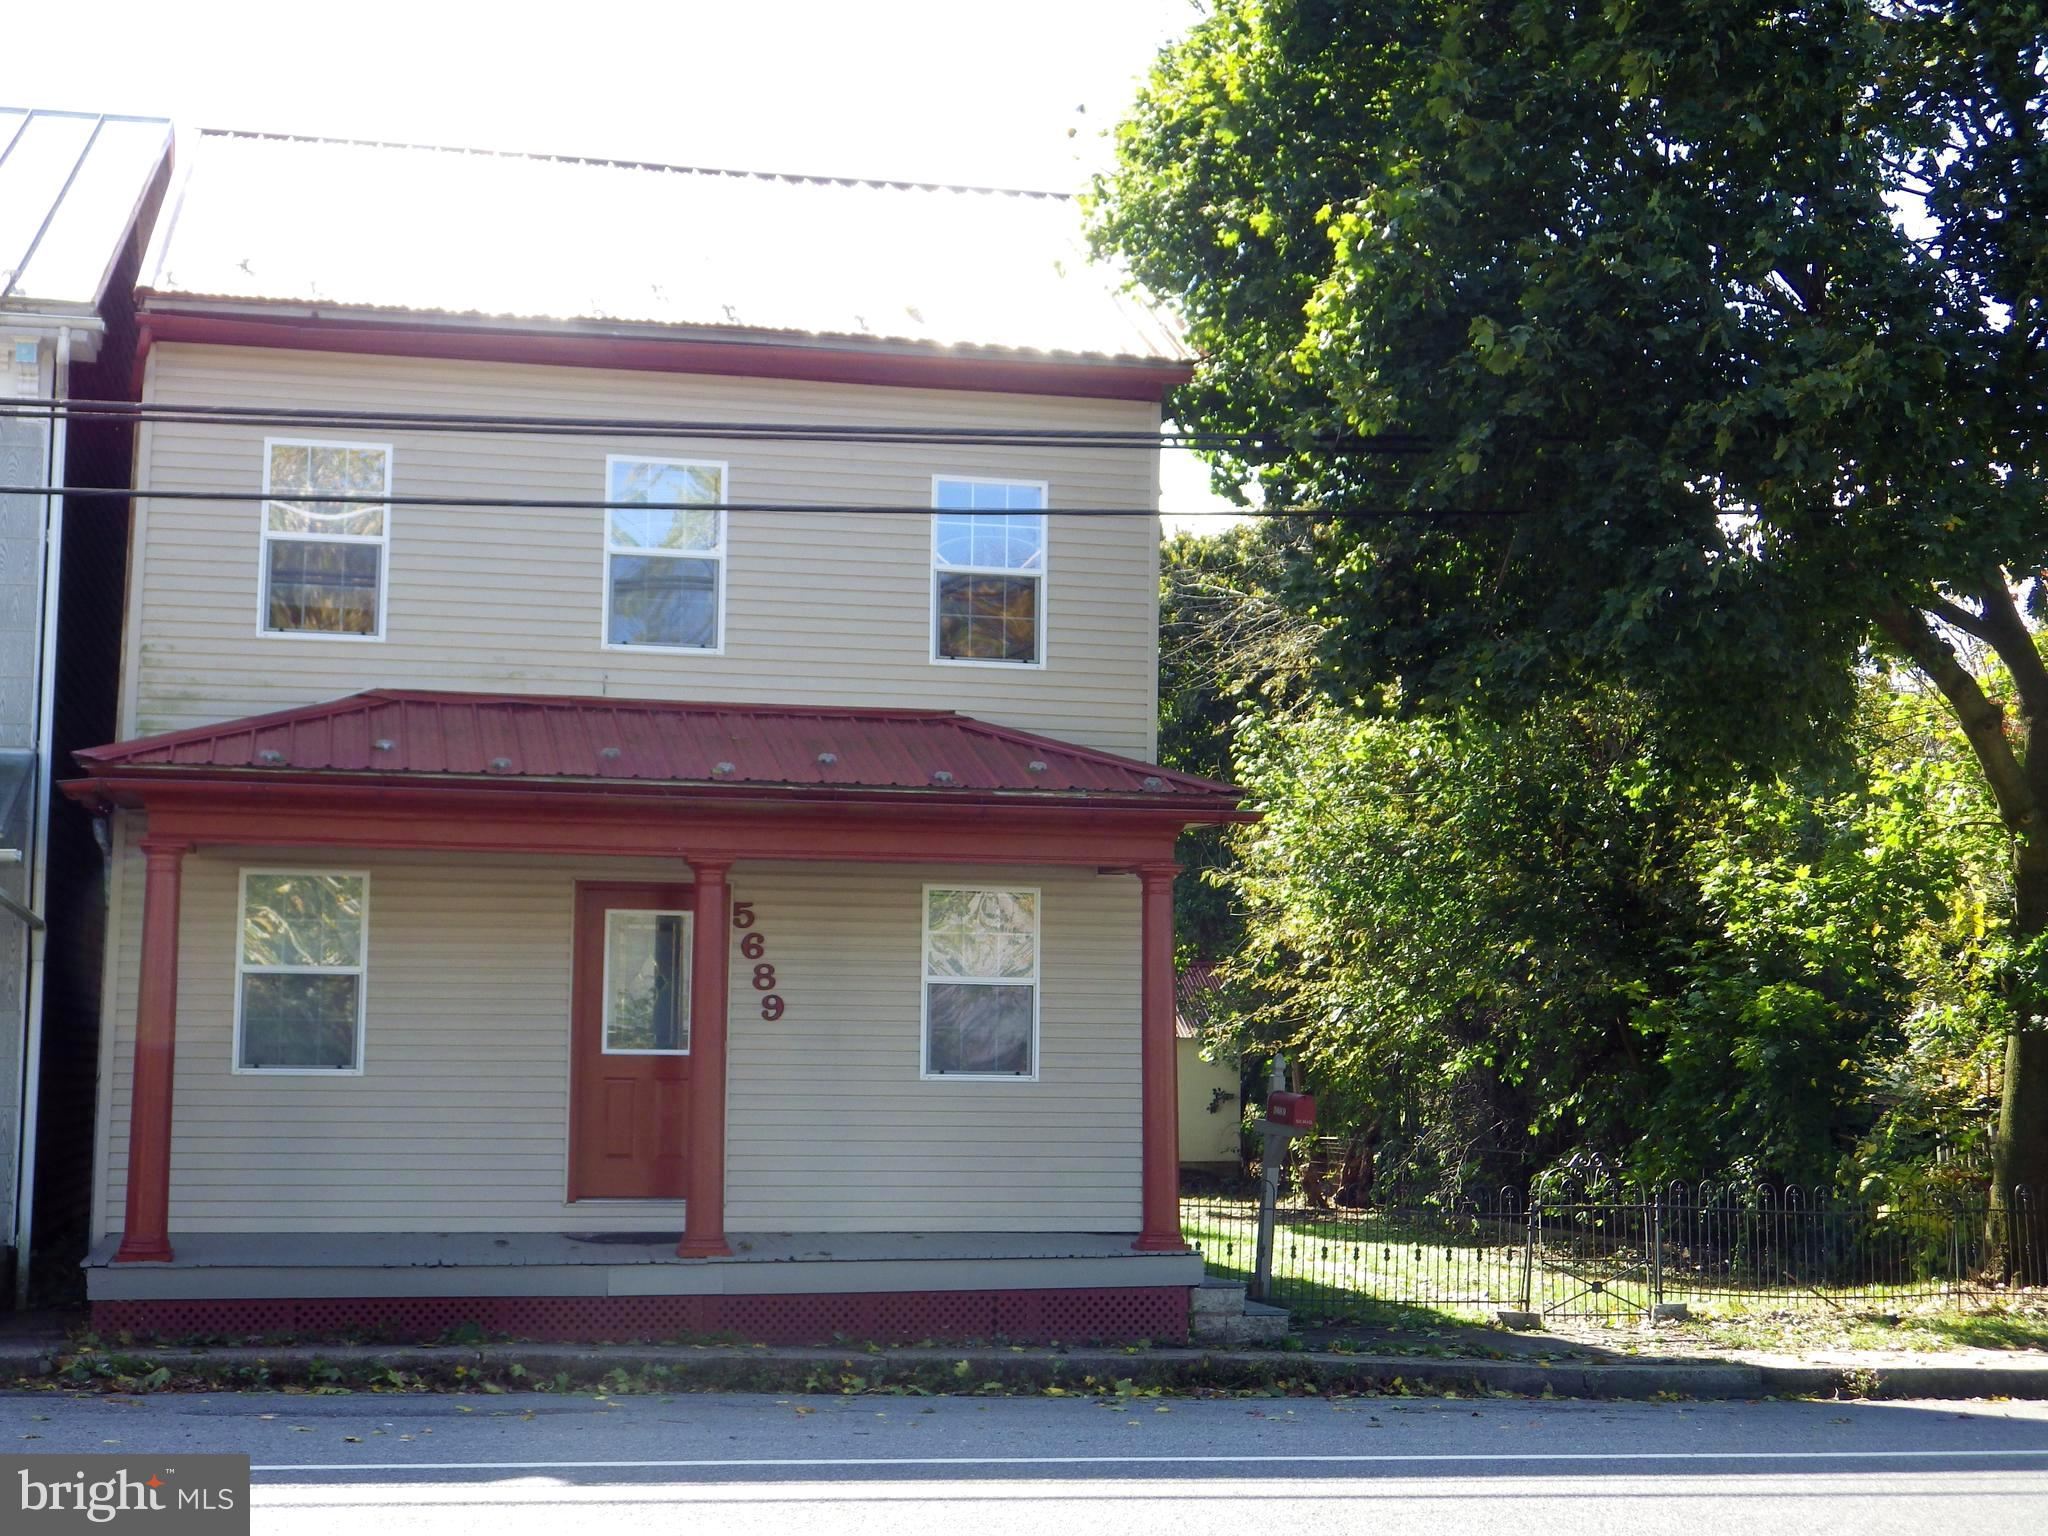 5689 OLD ROUTE 22, SHARTLESVILLE, PA 19554